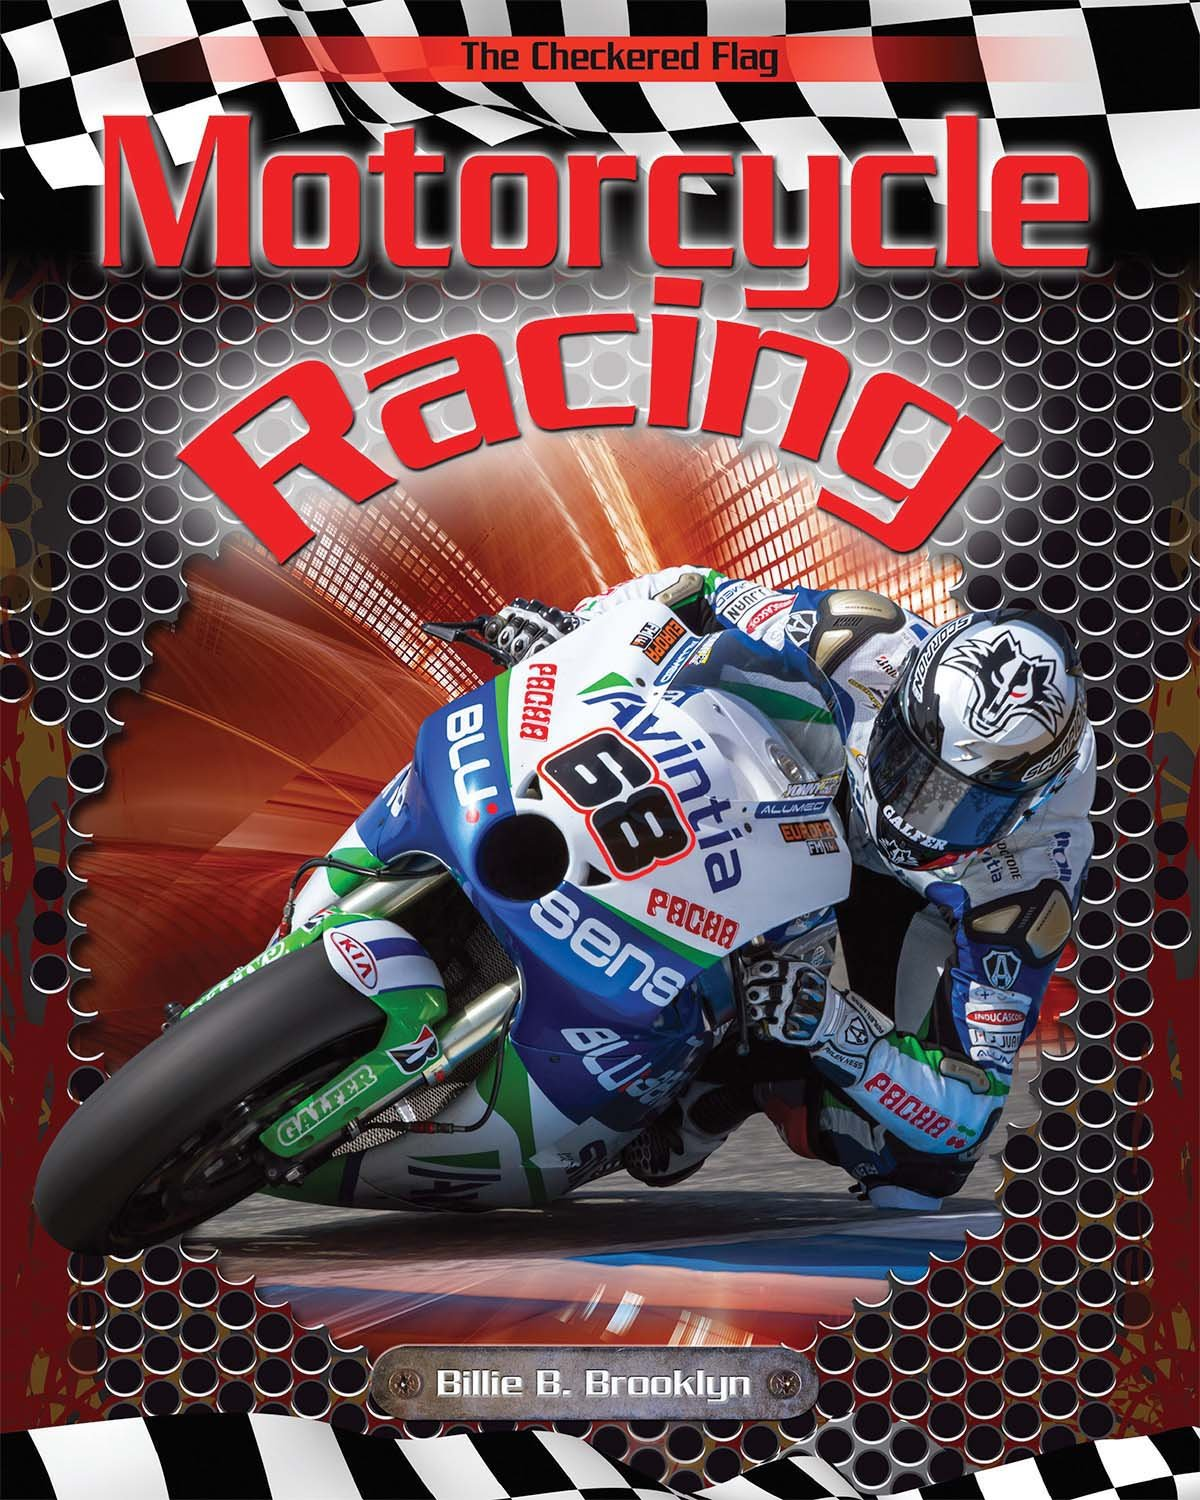 Motorcycle Racing (The Checkered Flag) Library Binding – January 1, 2015 Billie B. Brooklyn Powerkids Pr 1499401582 Transportation - Motorcycles